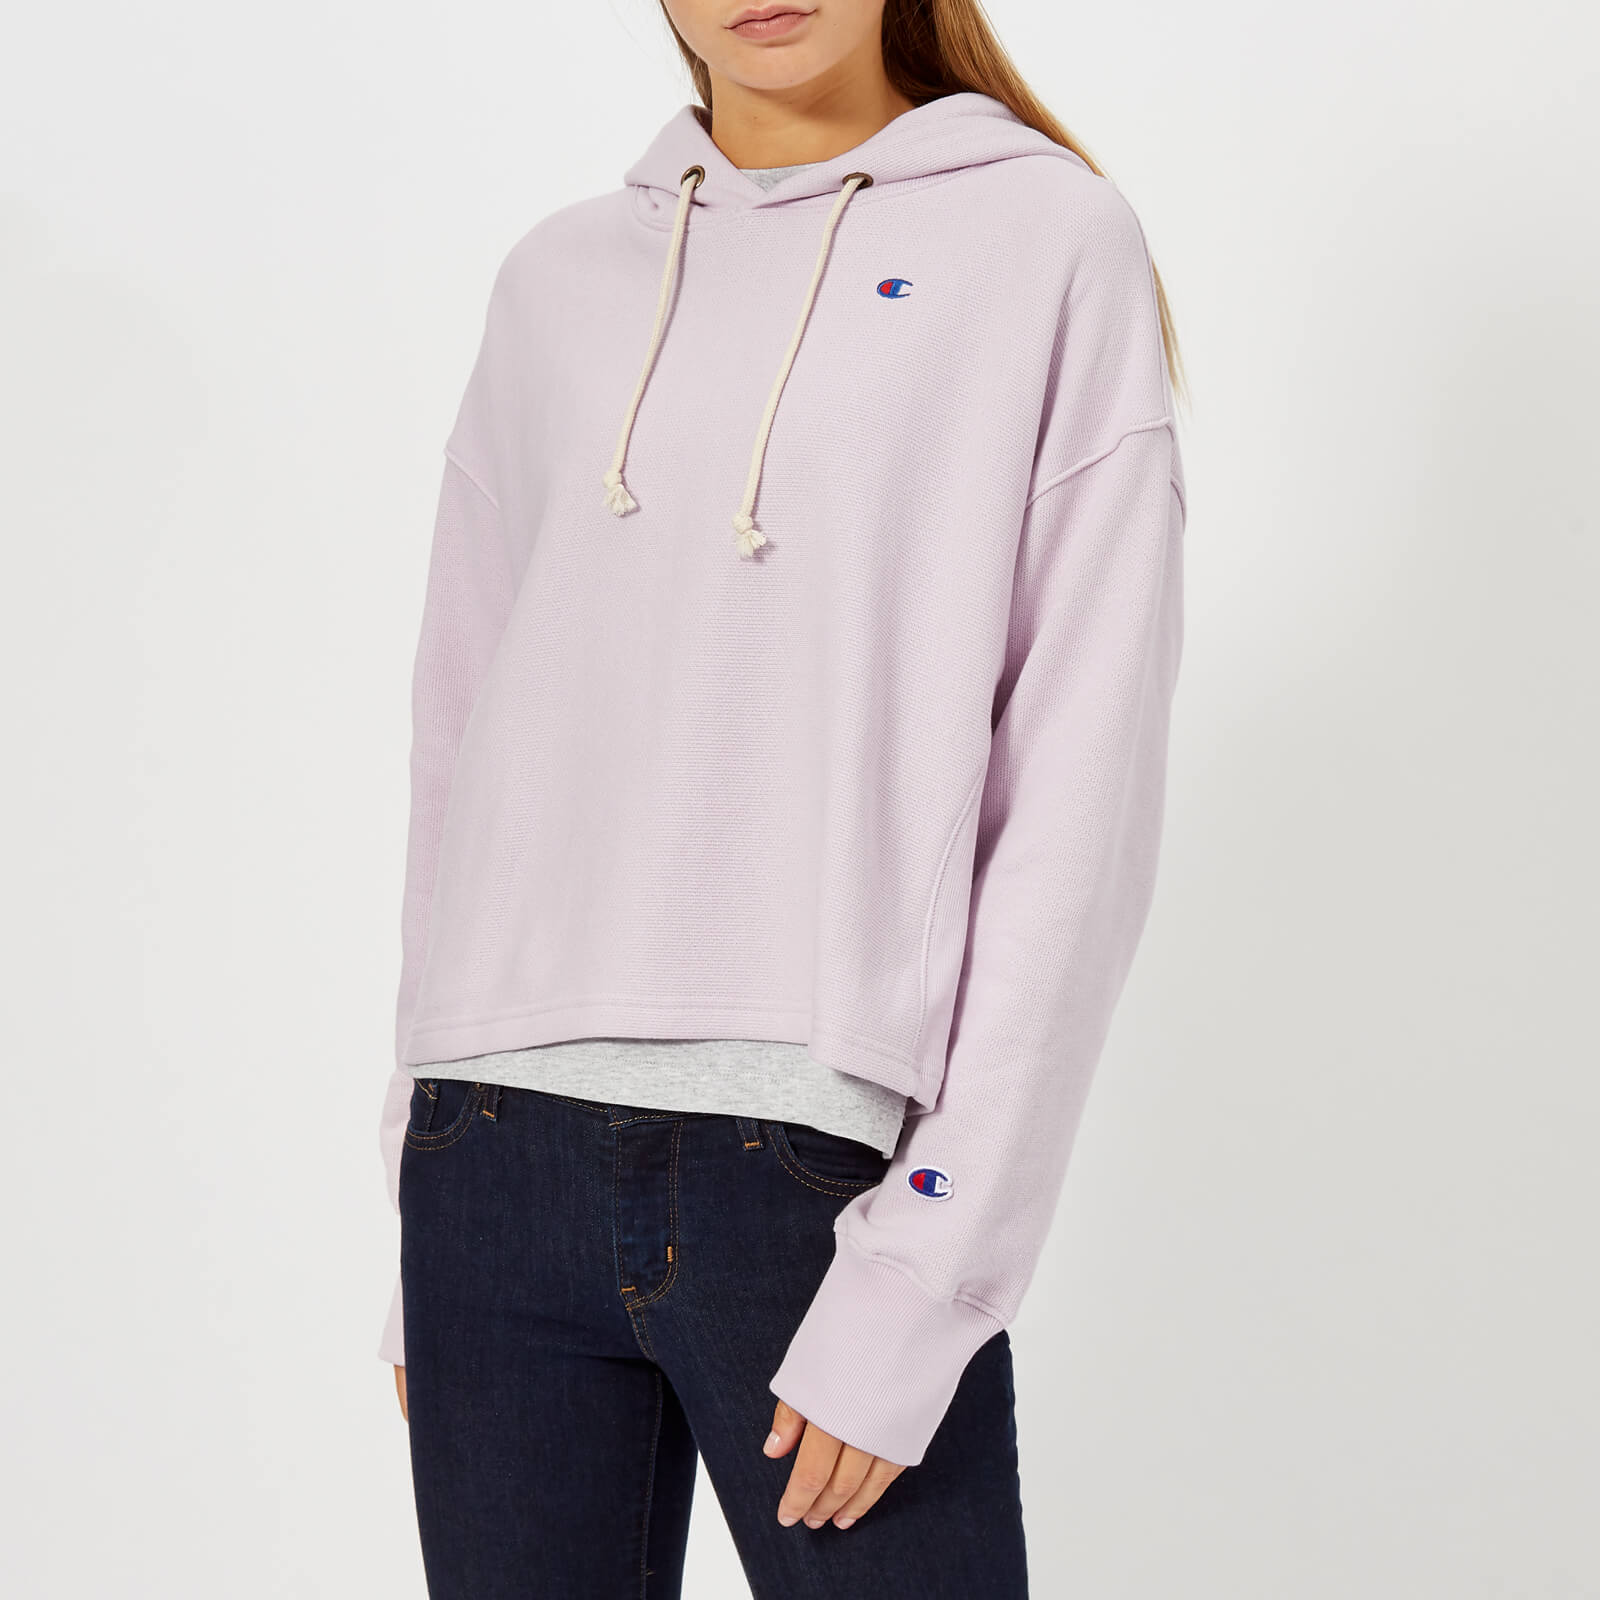 893413f73662 Champion Women s Hooded Cropped Sweatshirt - Lilac Womens Clothing ...